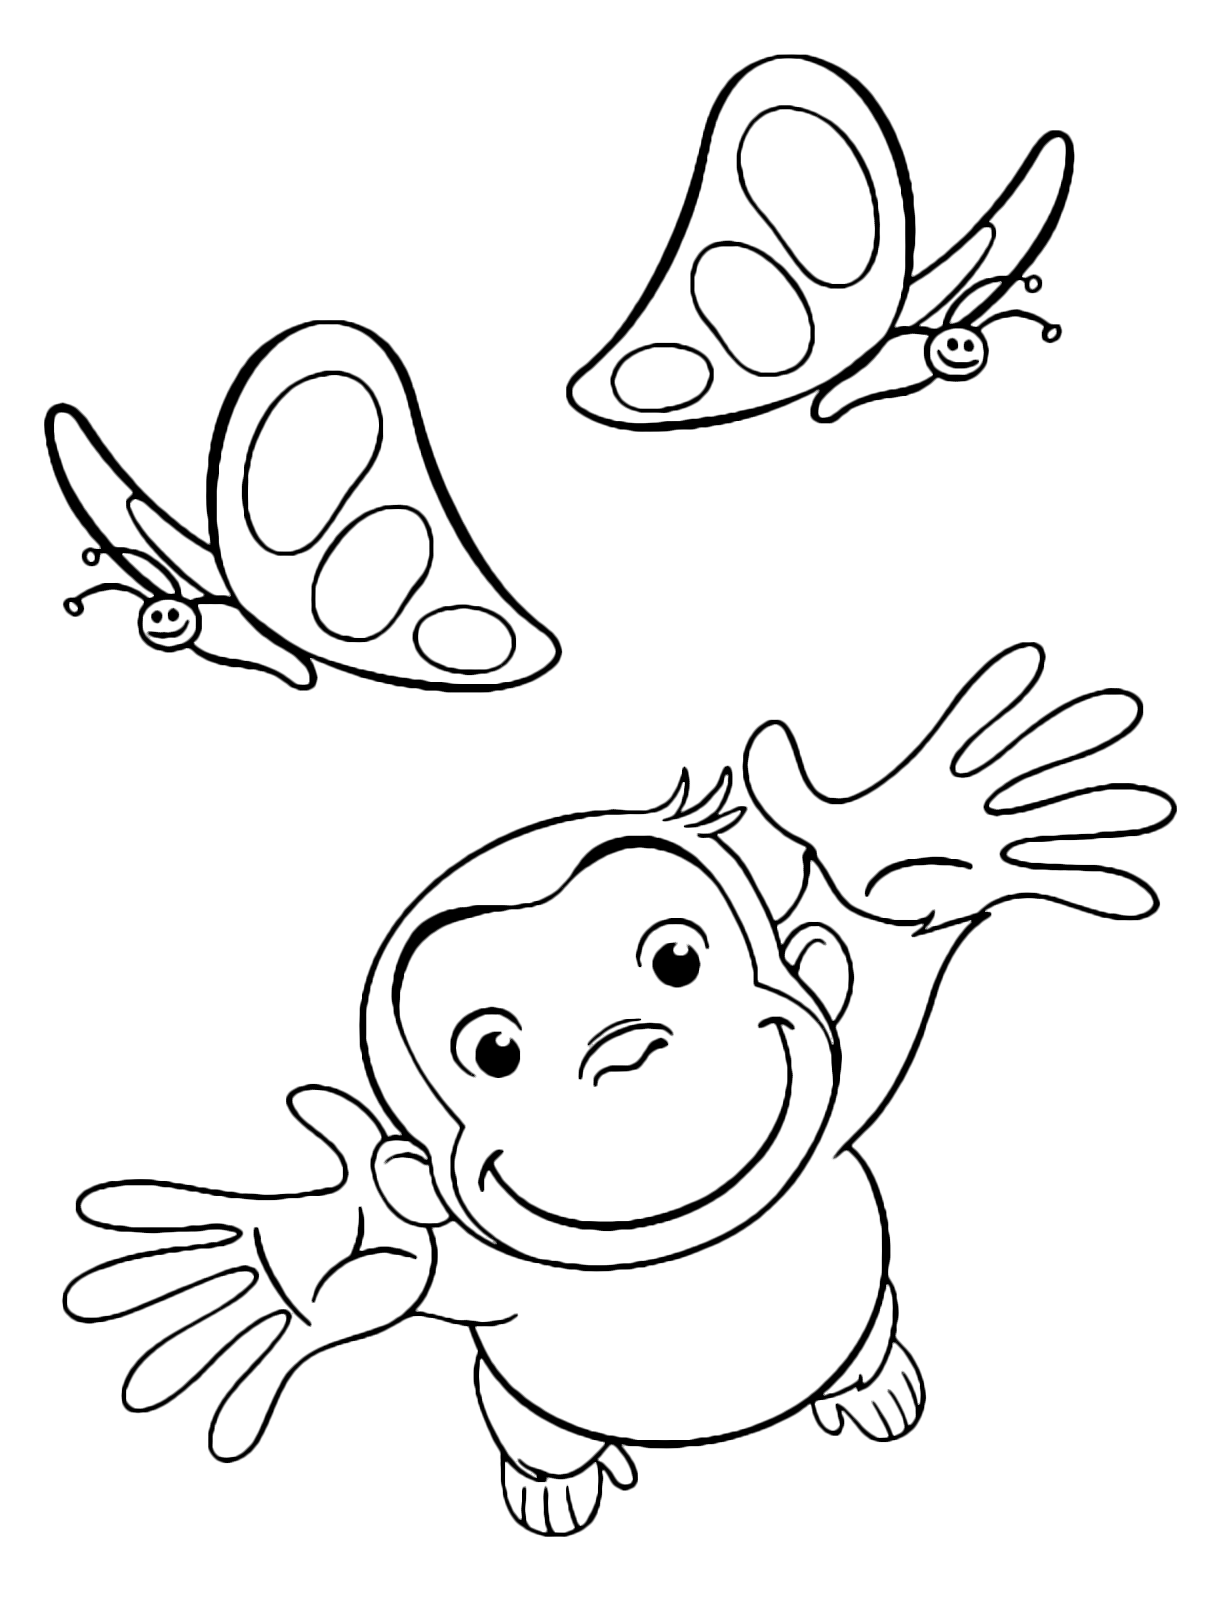 Curious George - George tries to catch the butterflies